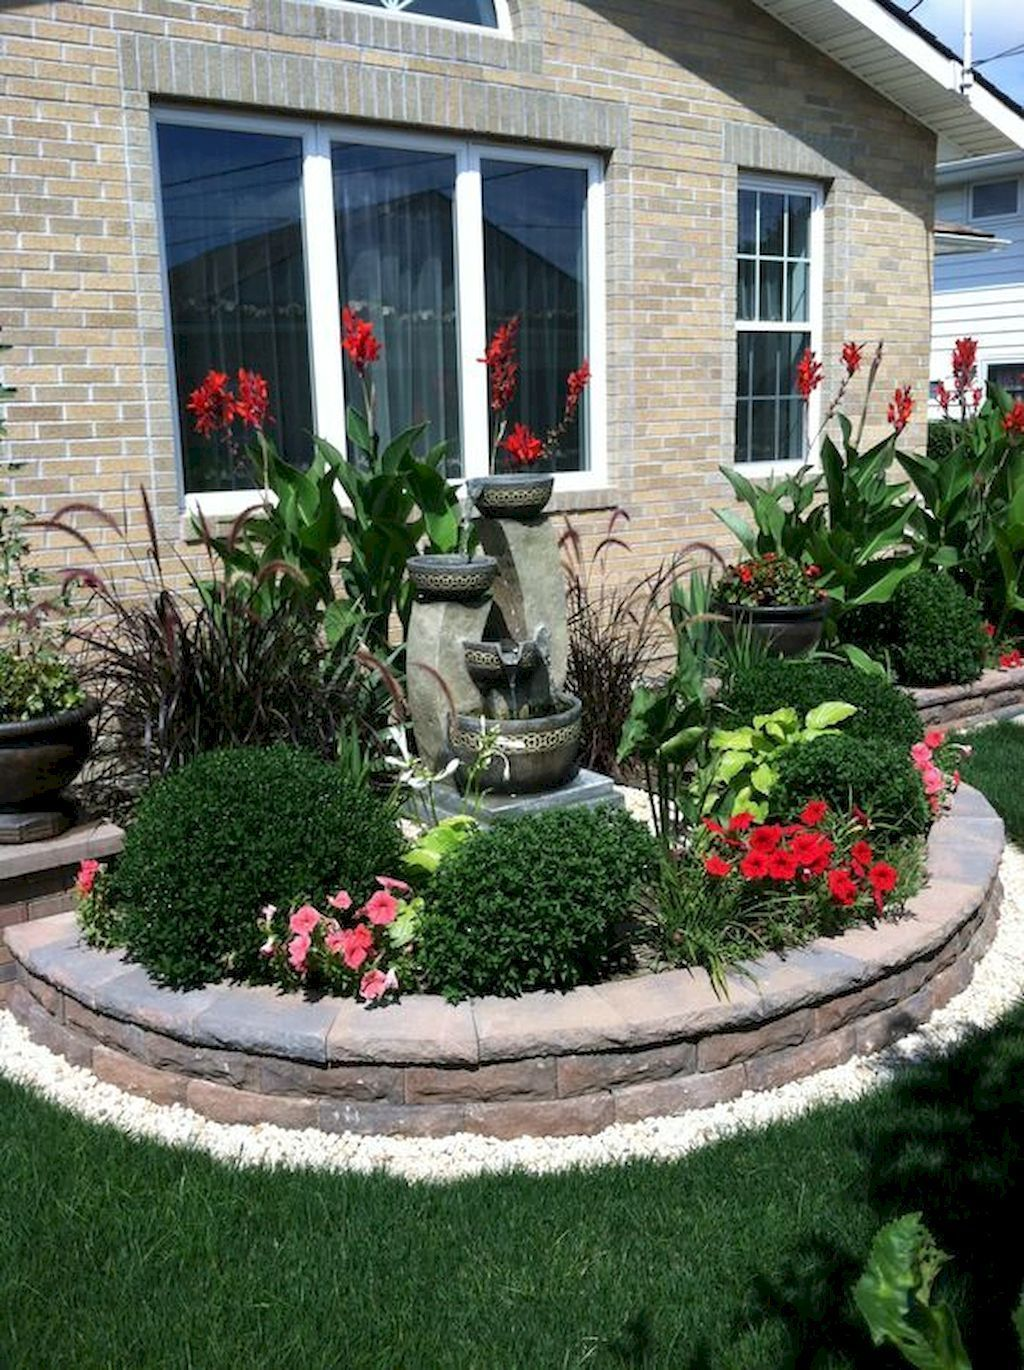 34 Stunning Spring Garden Ideas for Front Yard and Backyard Landscaping #frontyardlandscapedesign